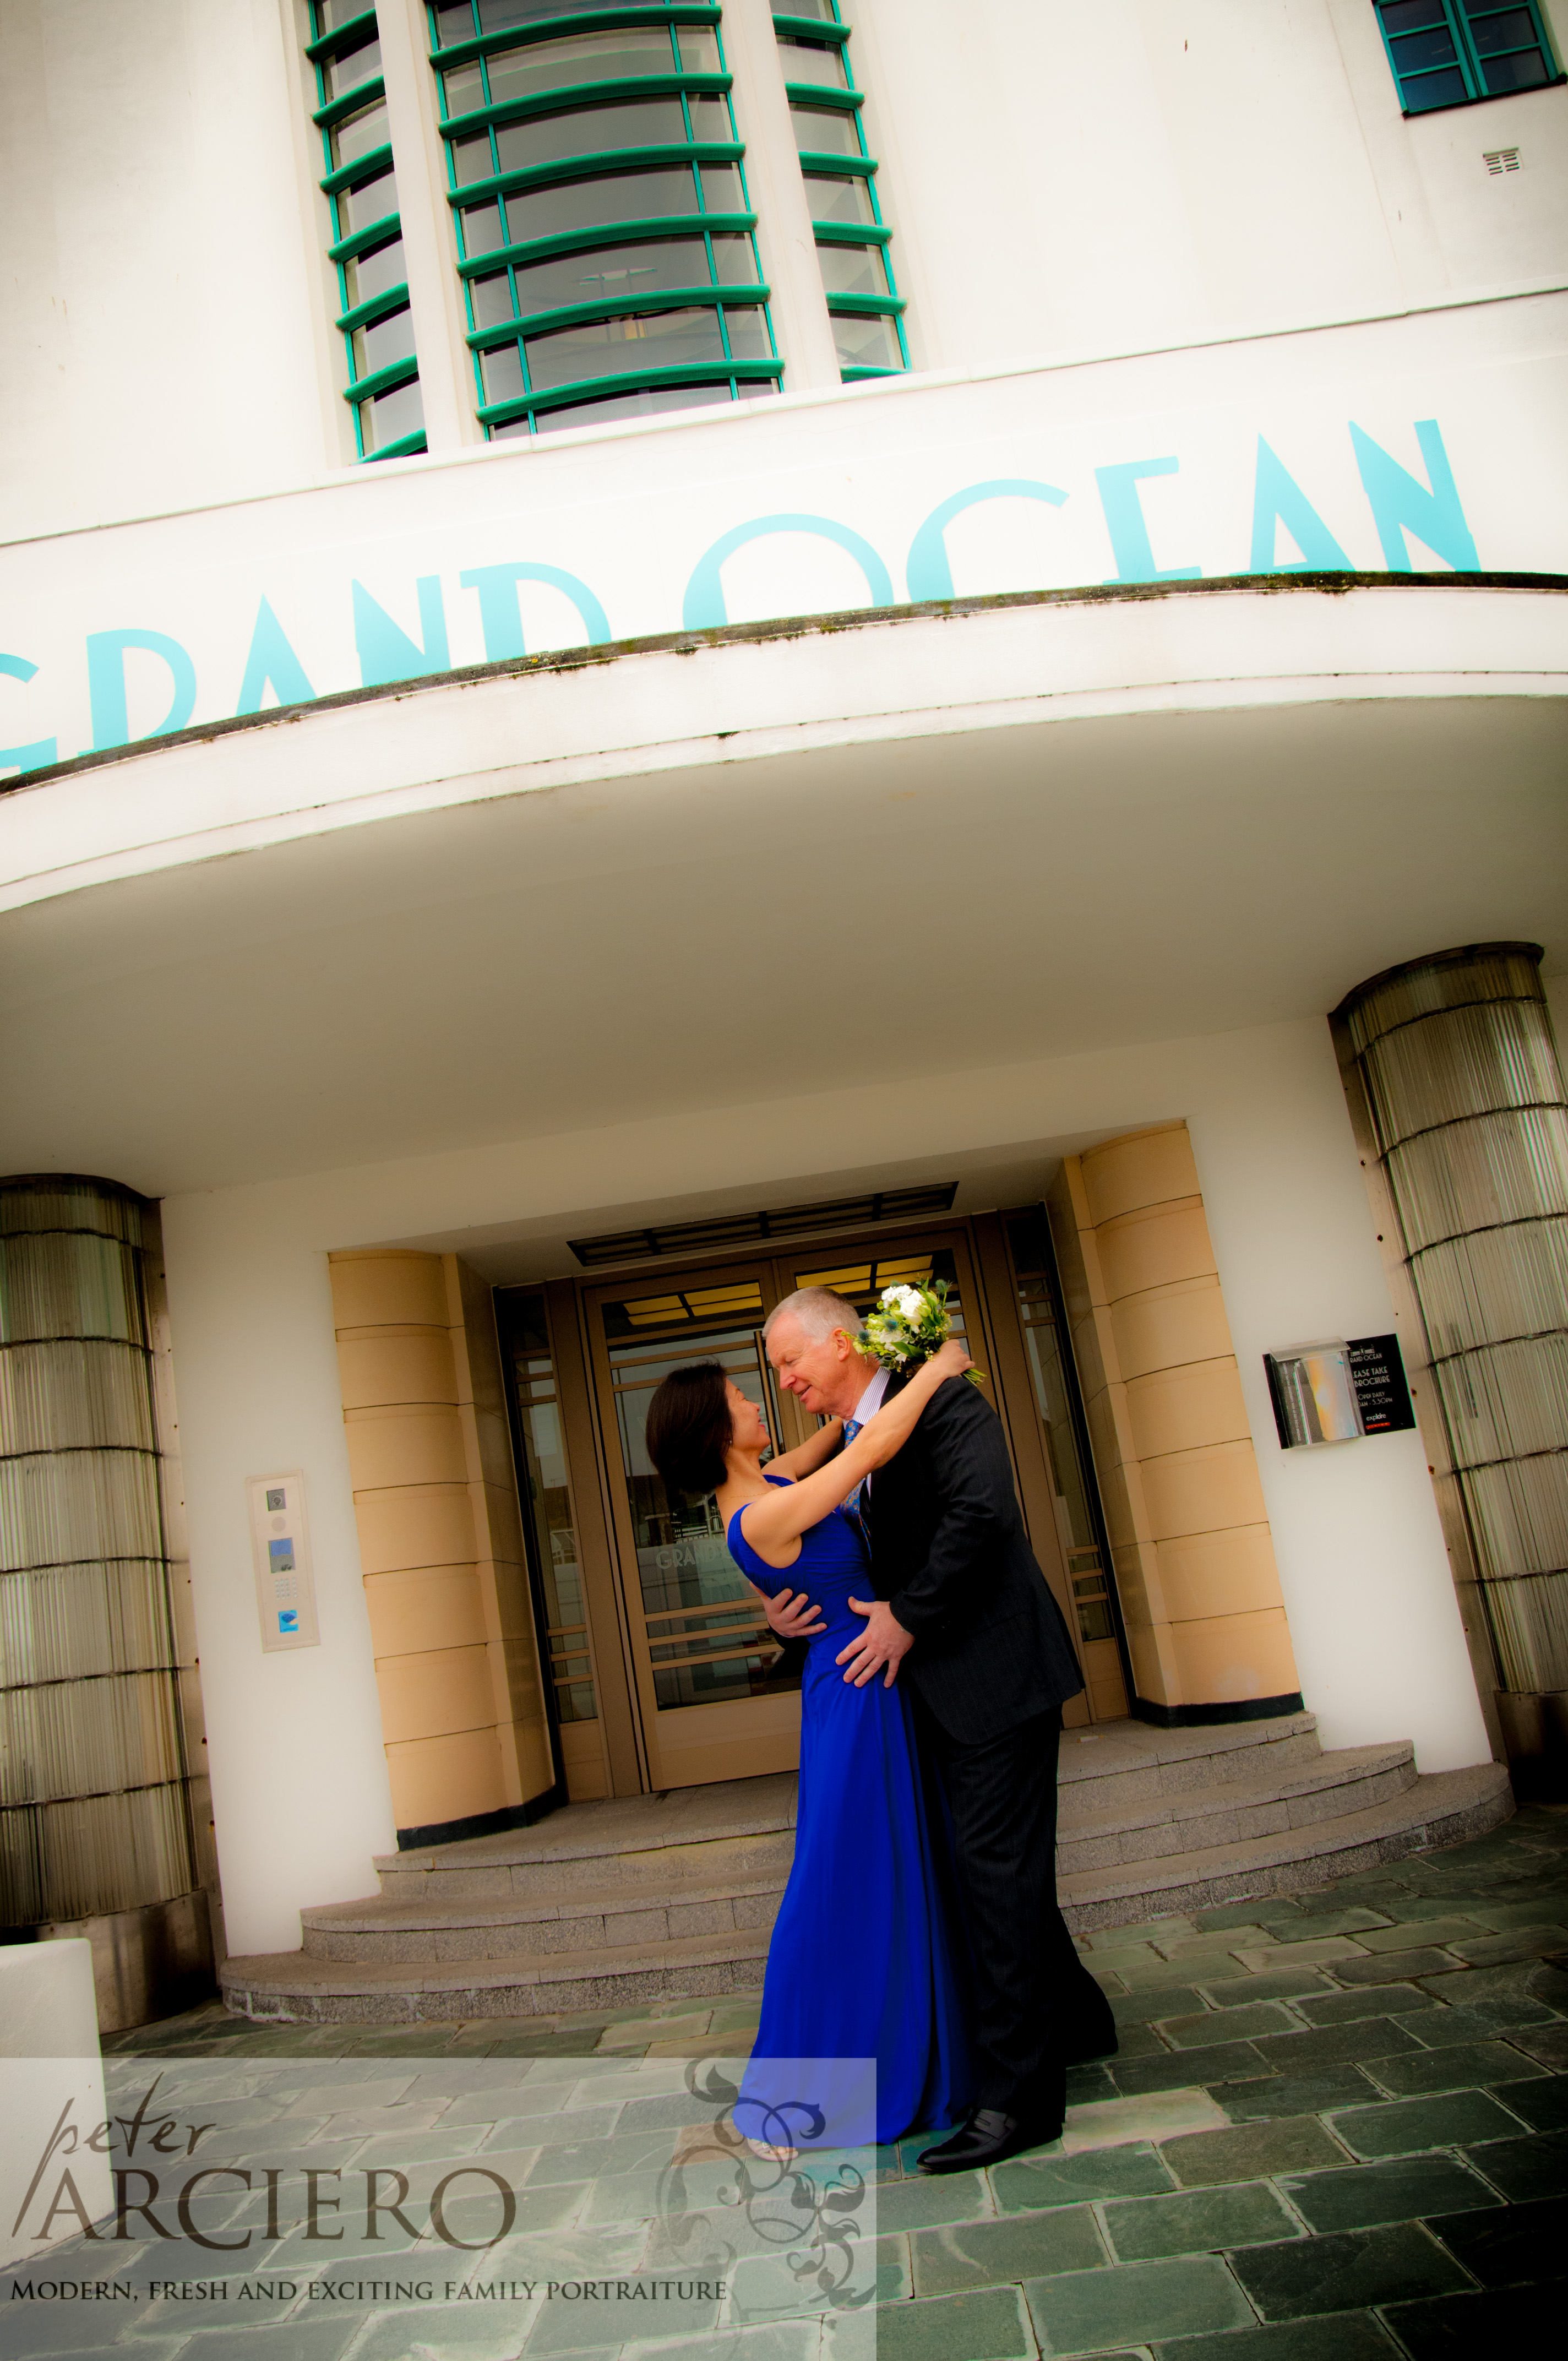 Vintage style wedding photos at the Grand Ocean in Saltdean